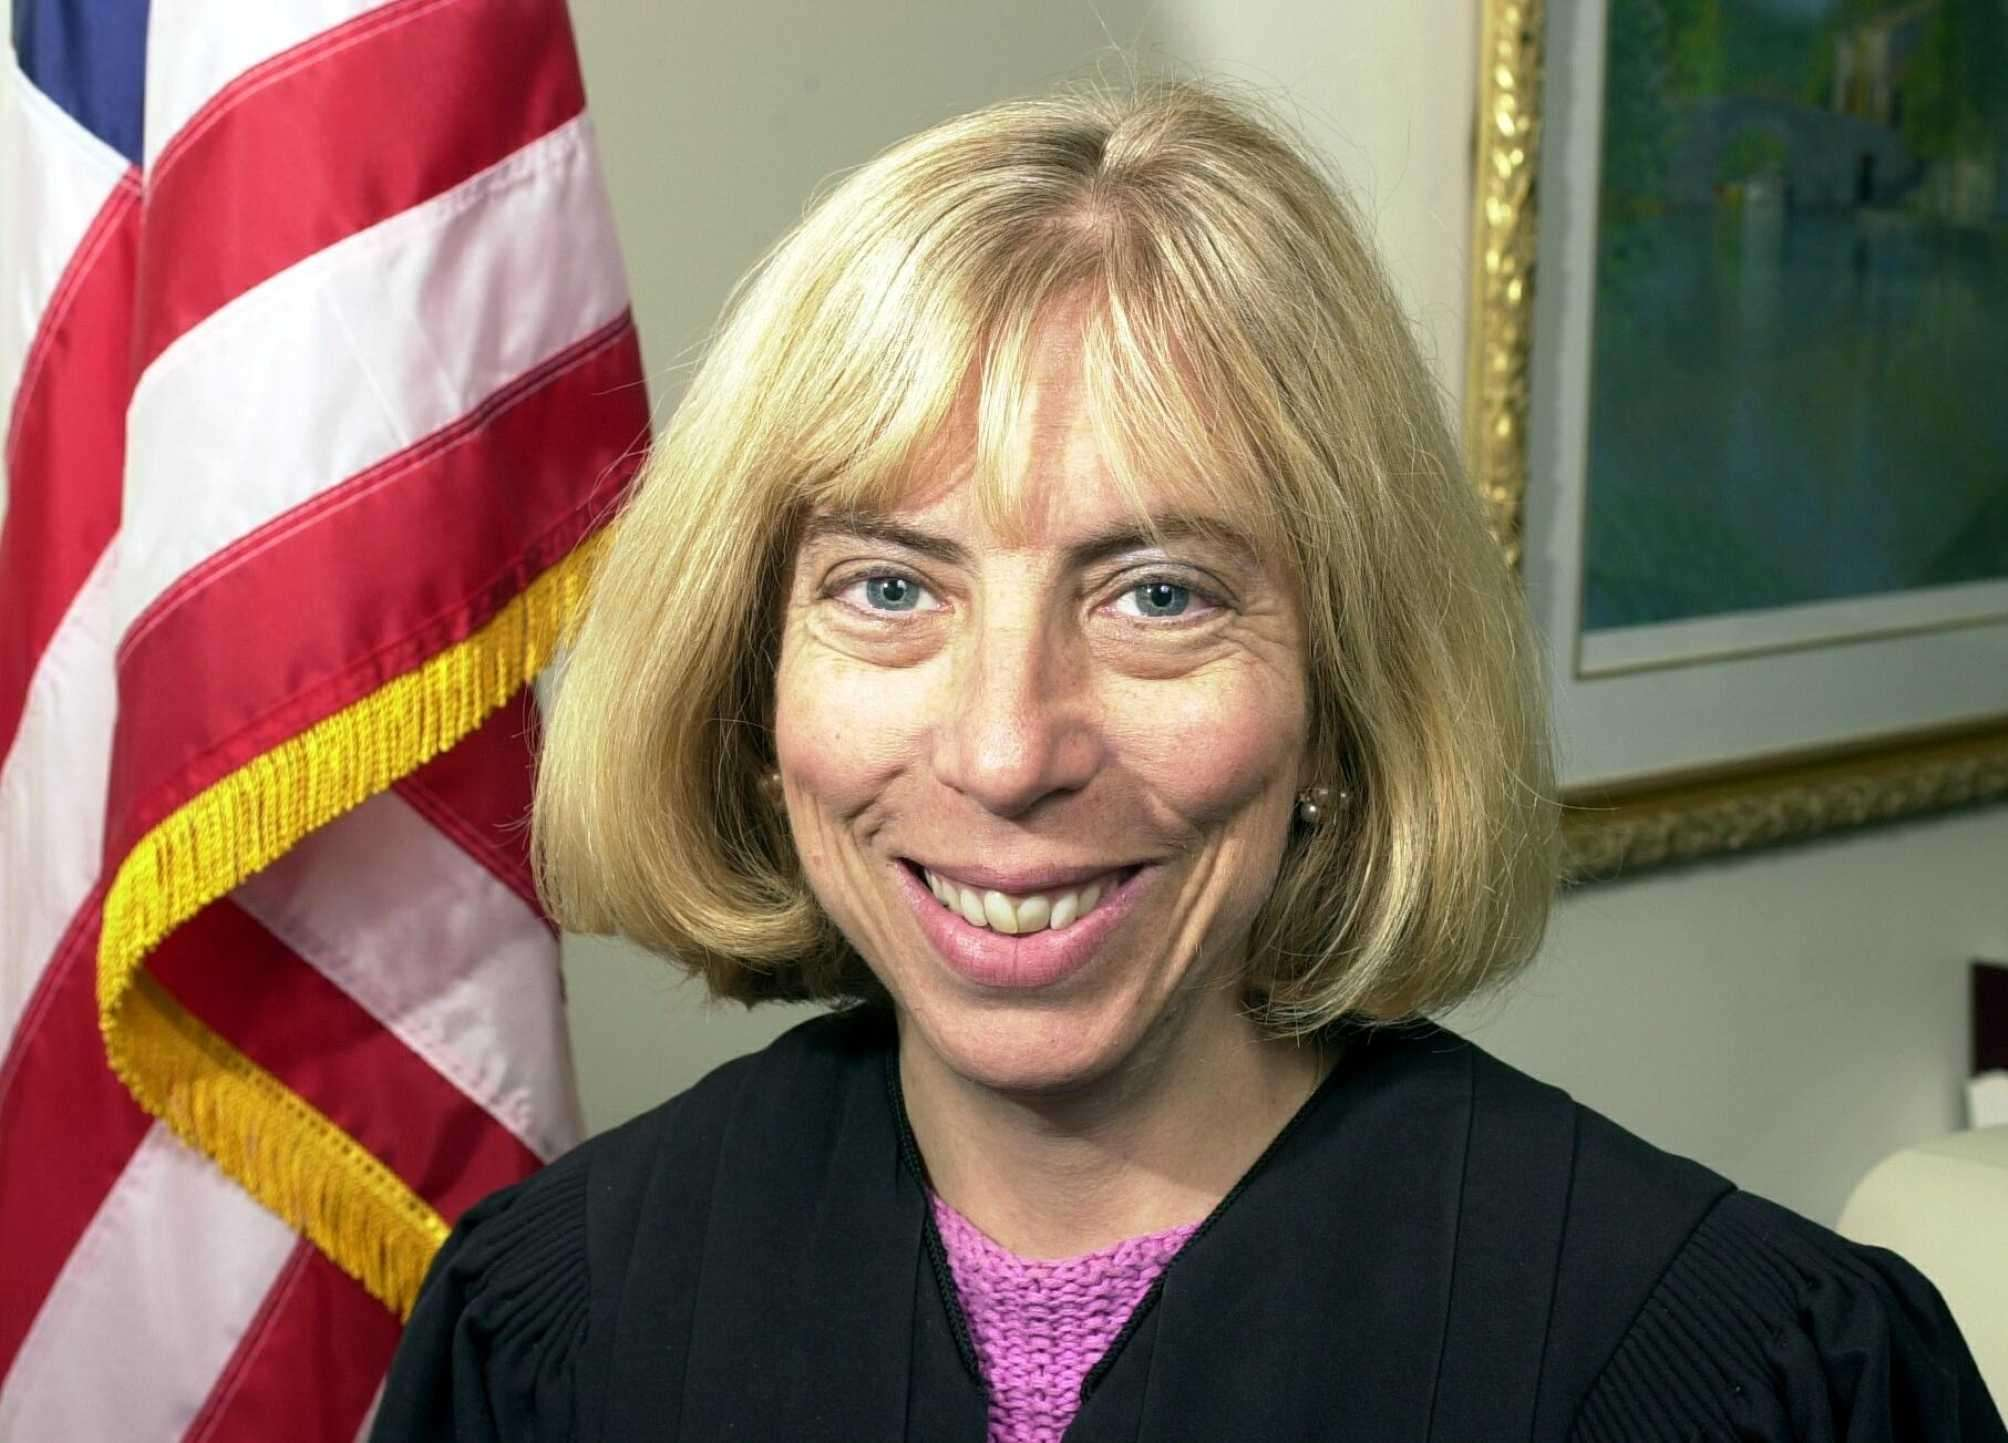 Suffolk Supreme Court Justice Emily Pines, elected to the Supreme Court in 2001 with the backing of the Republican, Conservative, Independence and Right to Life lines. Credit: Jim Peppler